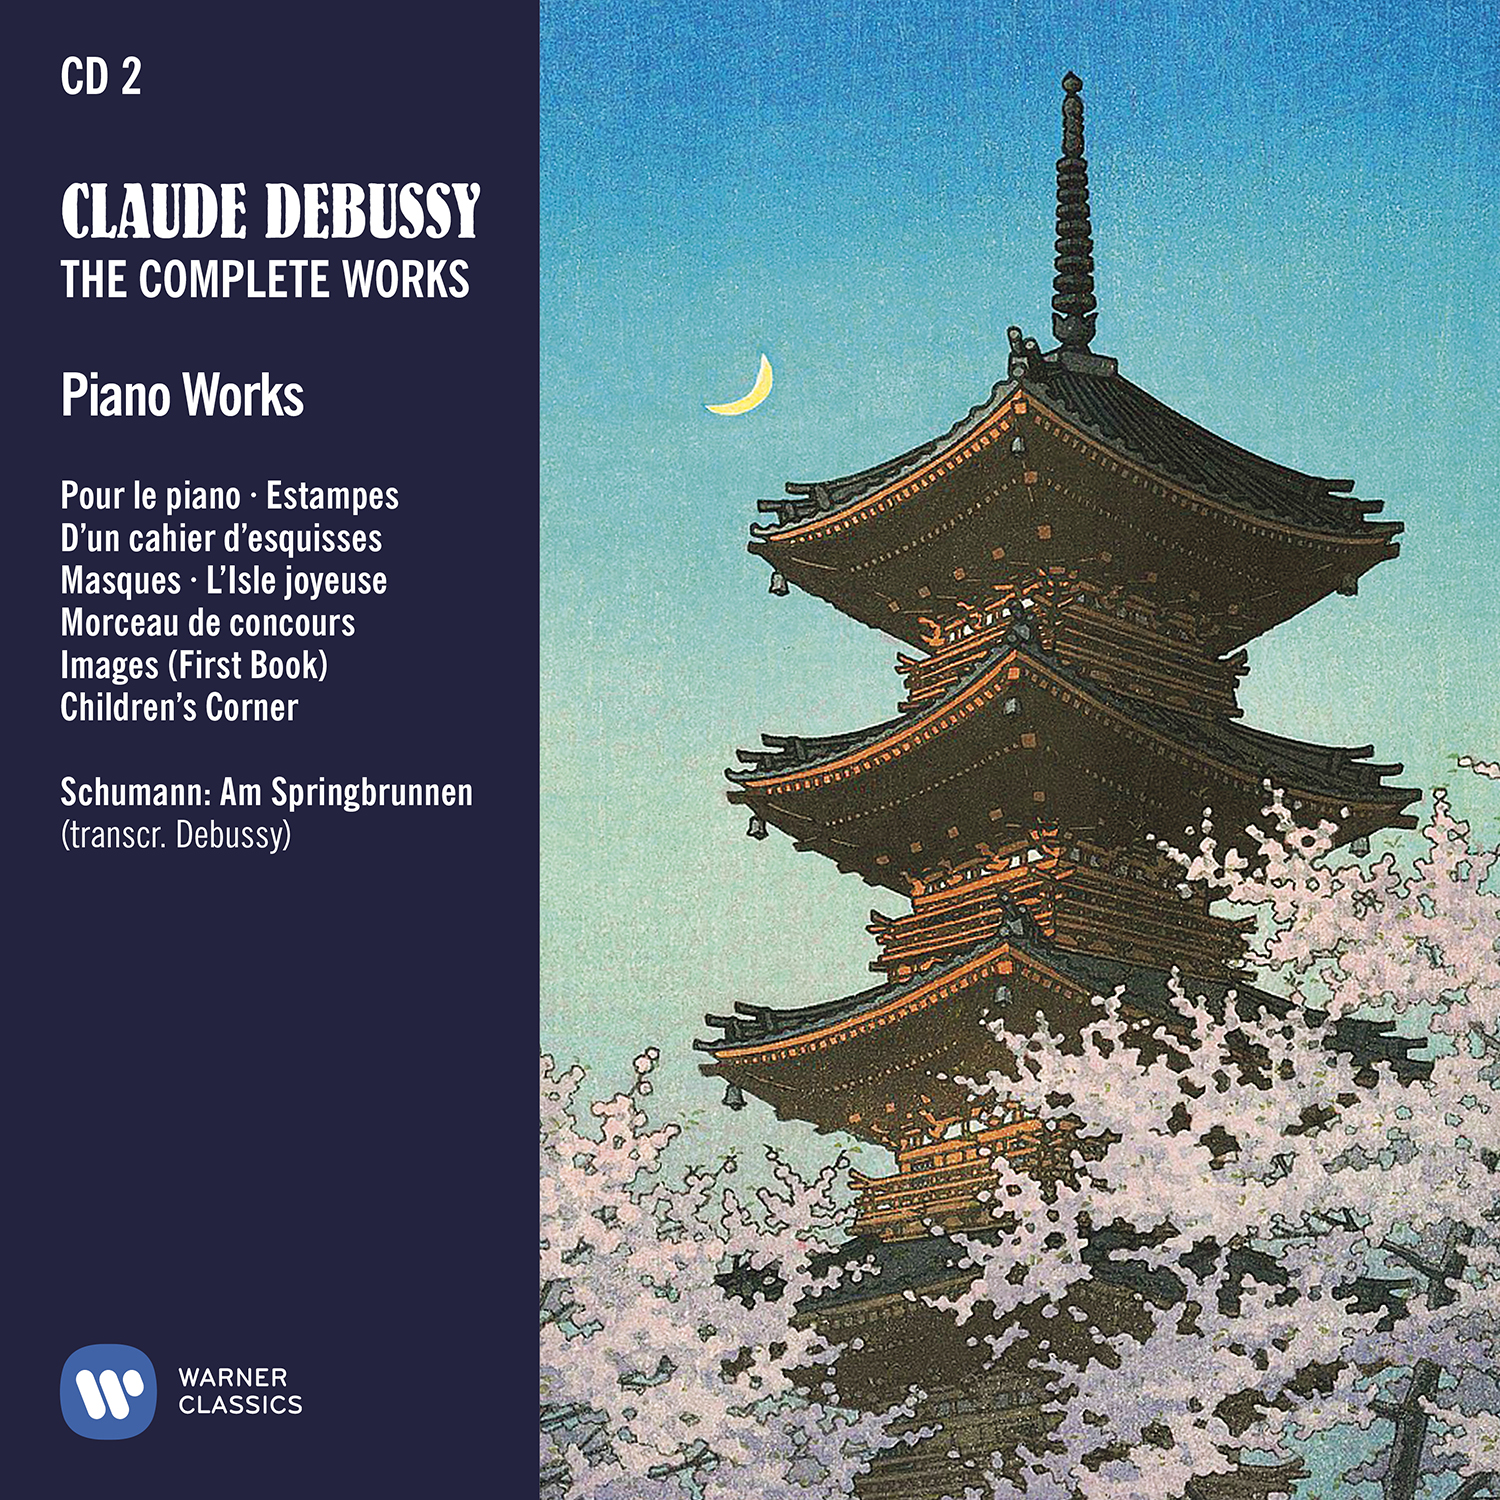 Debussy The complete works - Cover wallet CD2.jpg